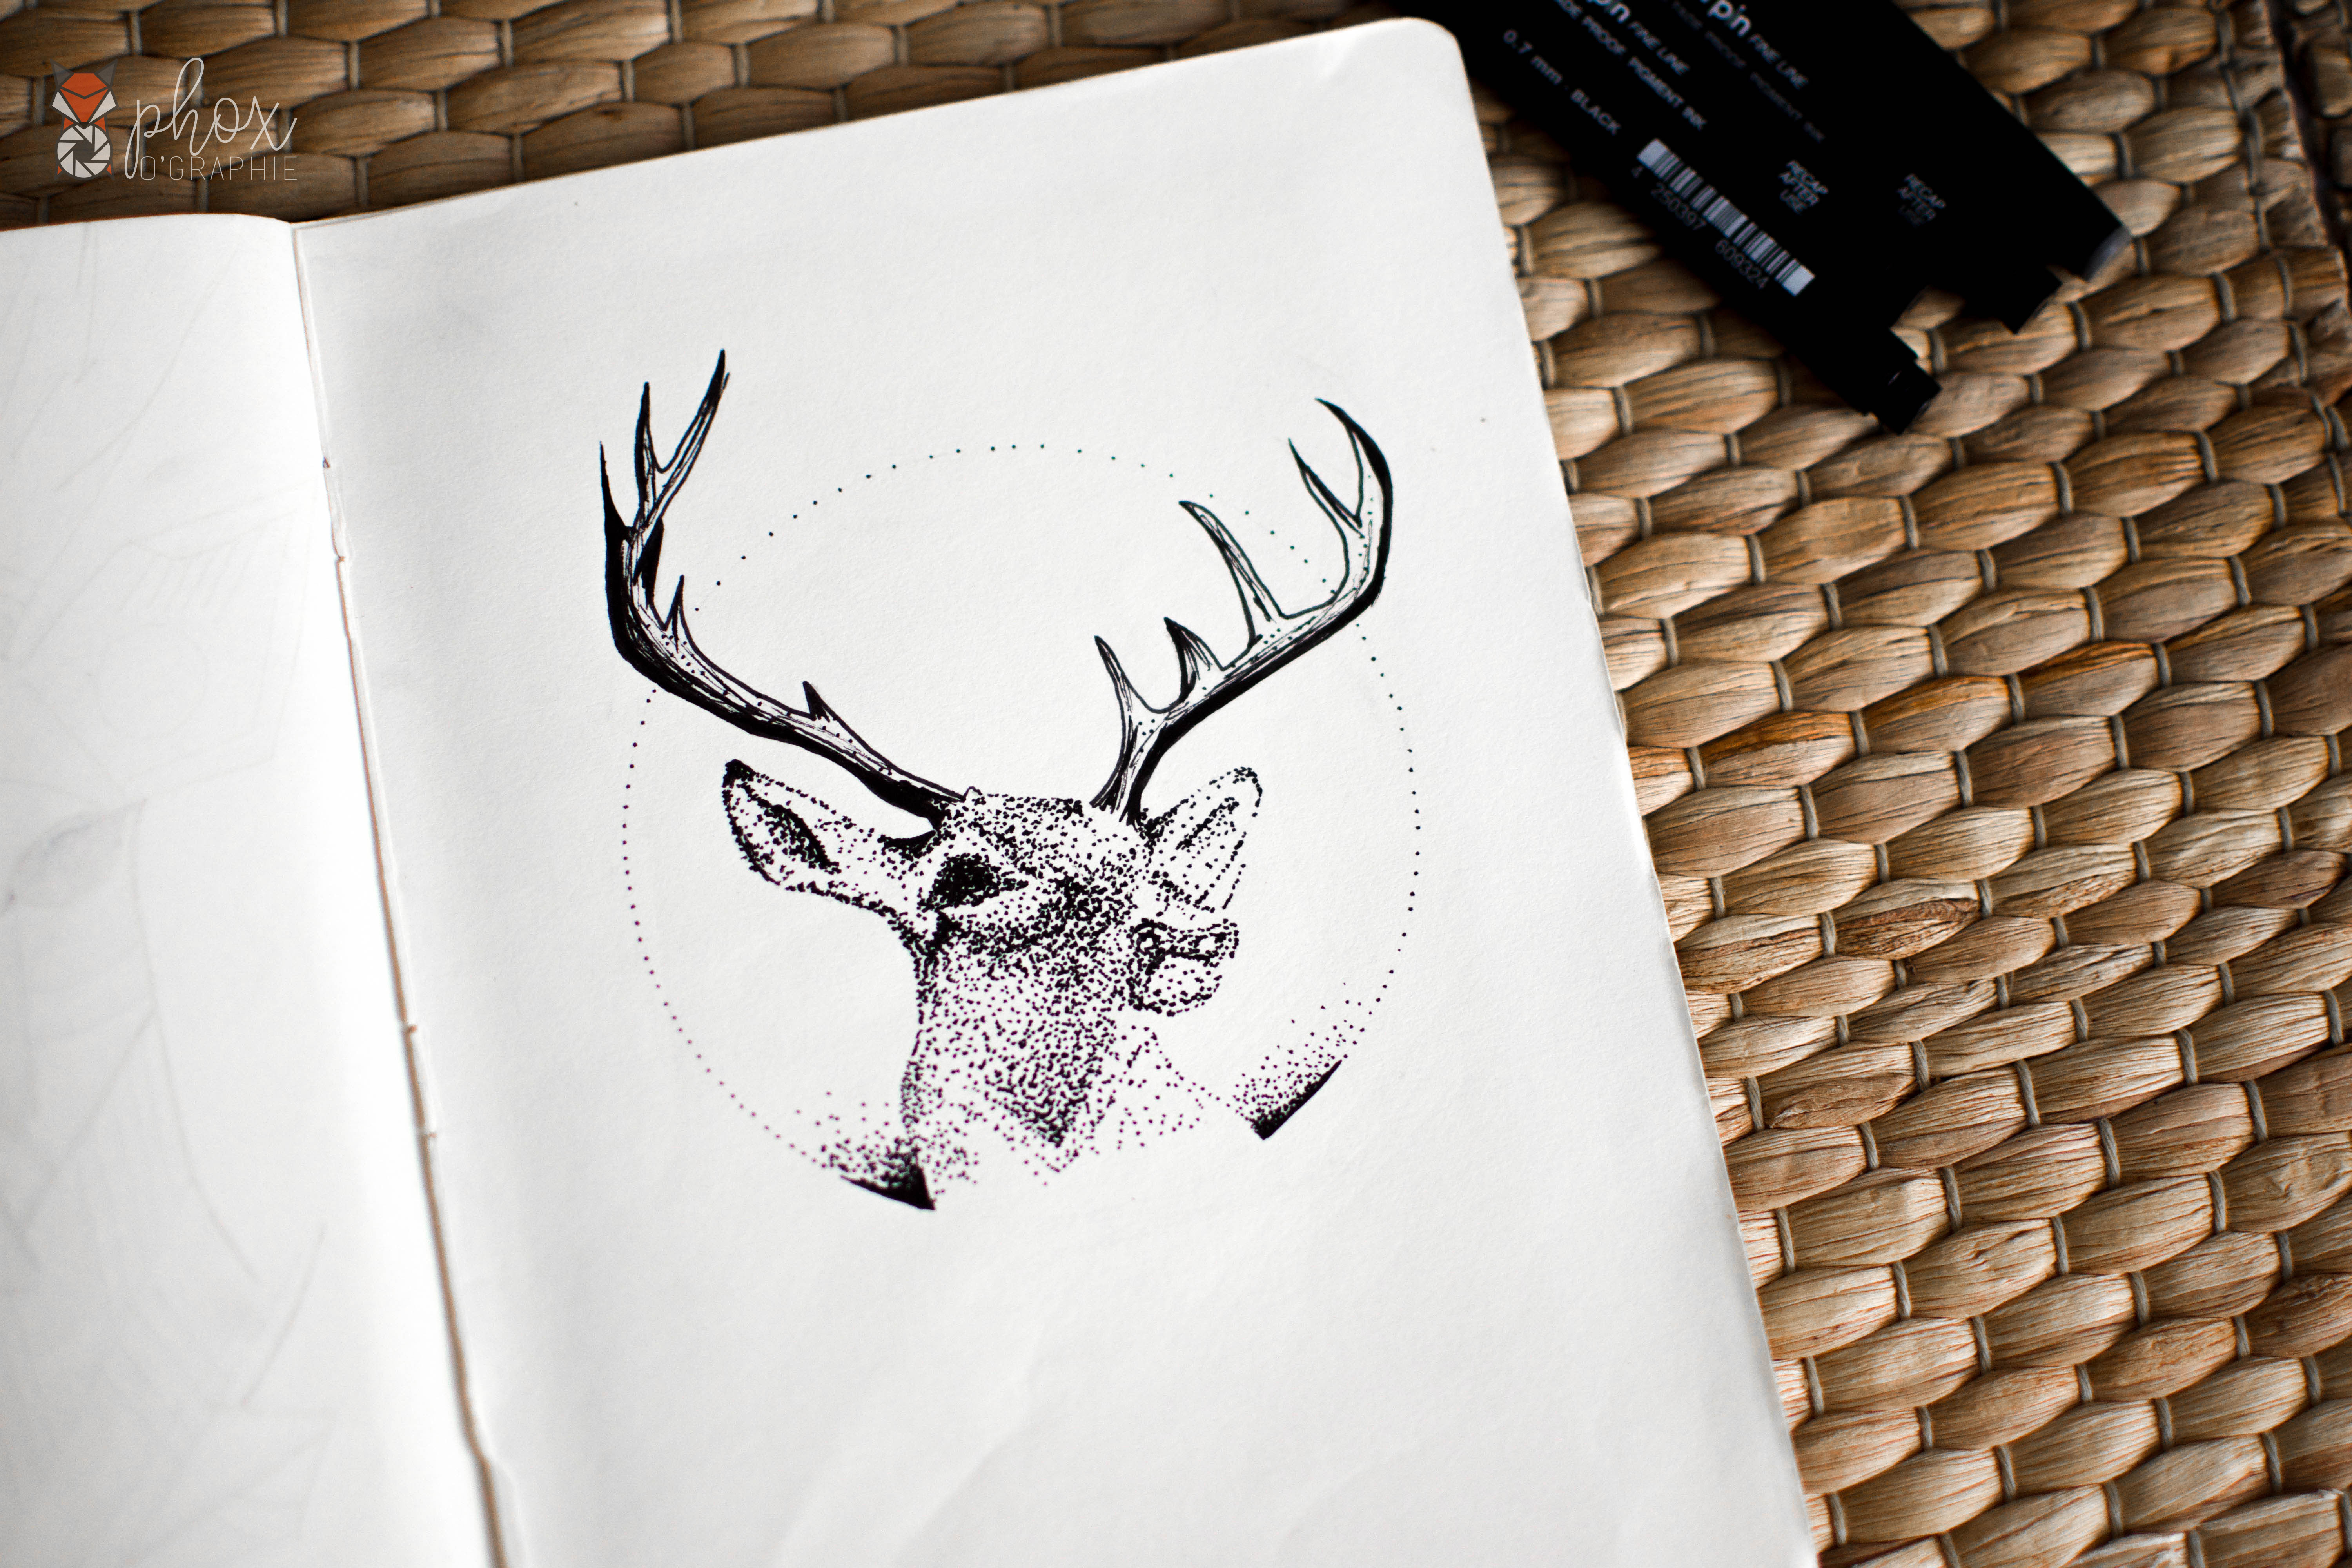 Dessin phoxographie reproduction cerf